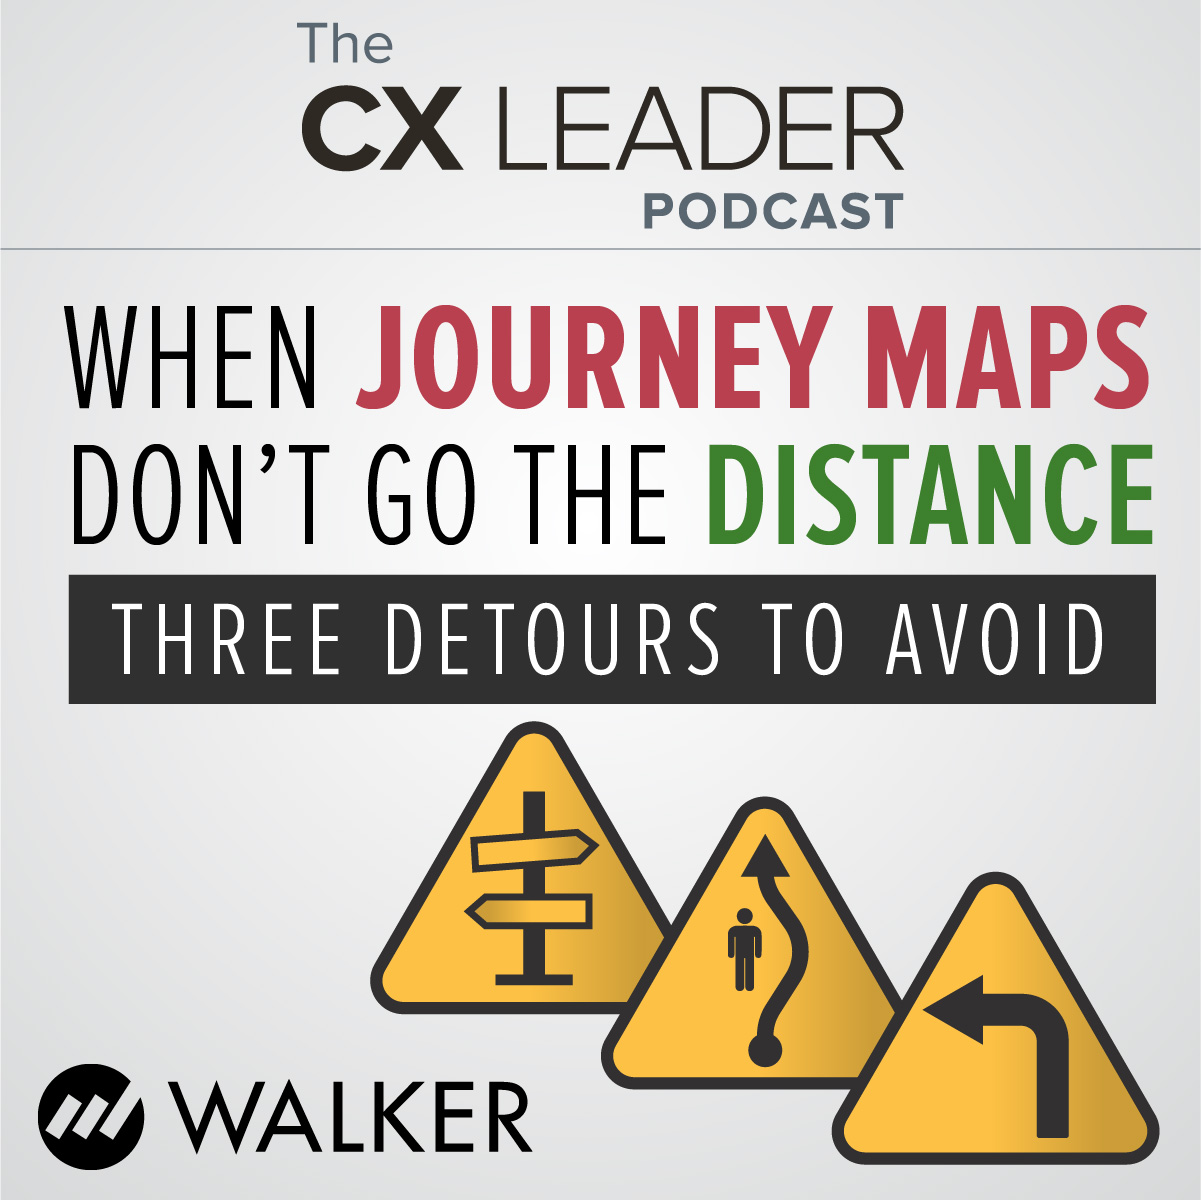 When Journey Maps Don't Go the Distance